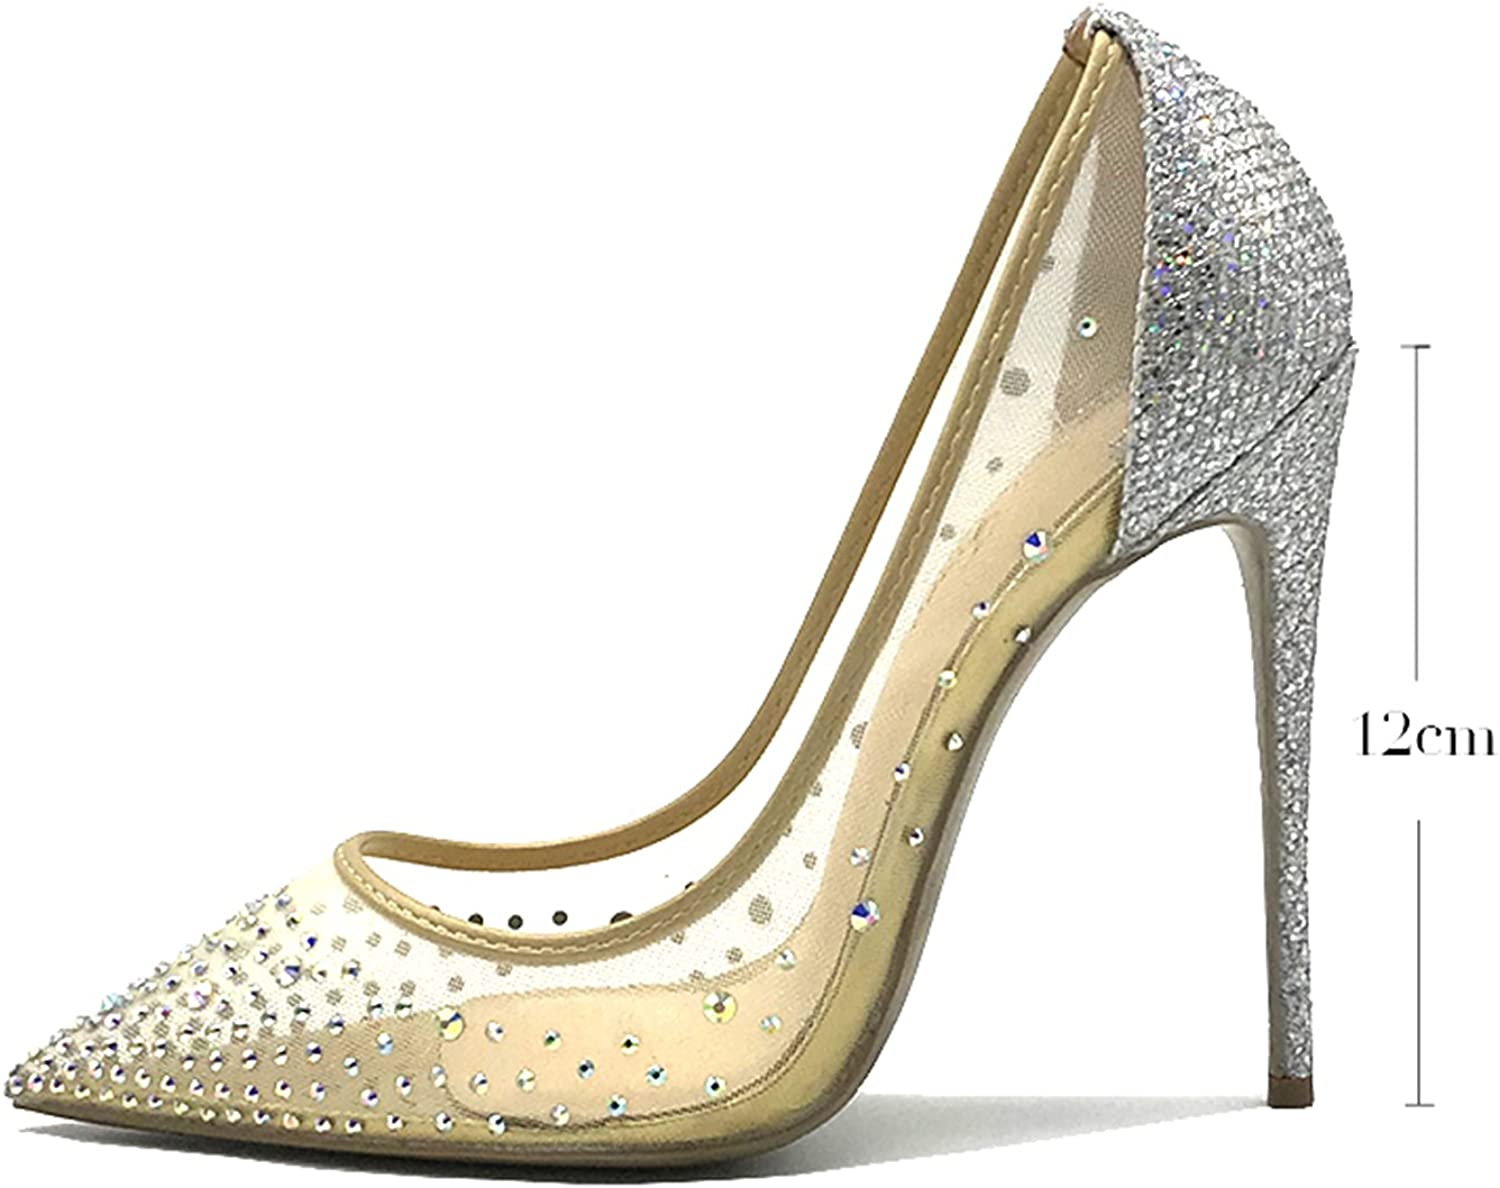 Carlos Foushee Women Pointed Toe Heels Crystal Bling Fashion Silver shoes High Heels Pumps 12cm See Through Party Wedding shoes